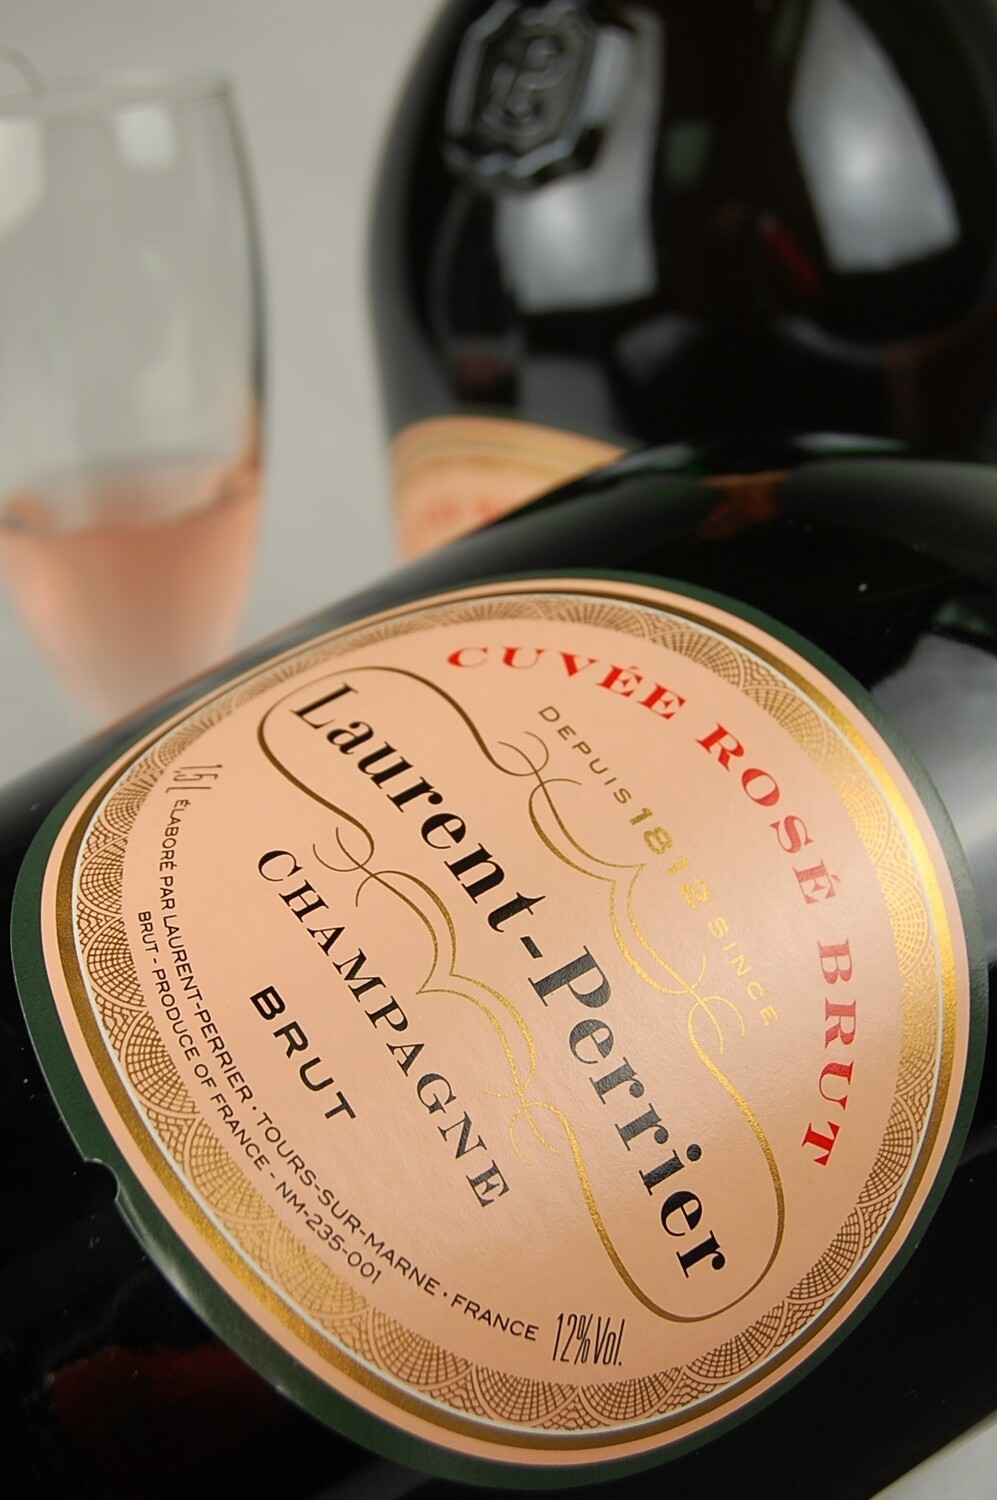 Laurent Perrier Cuvée Rosé